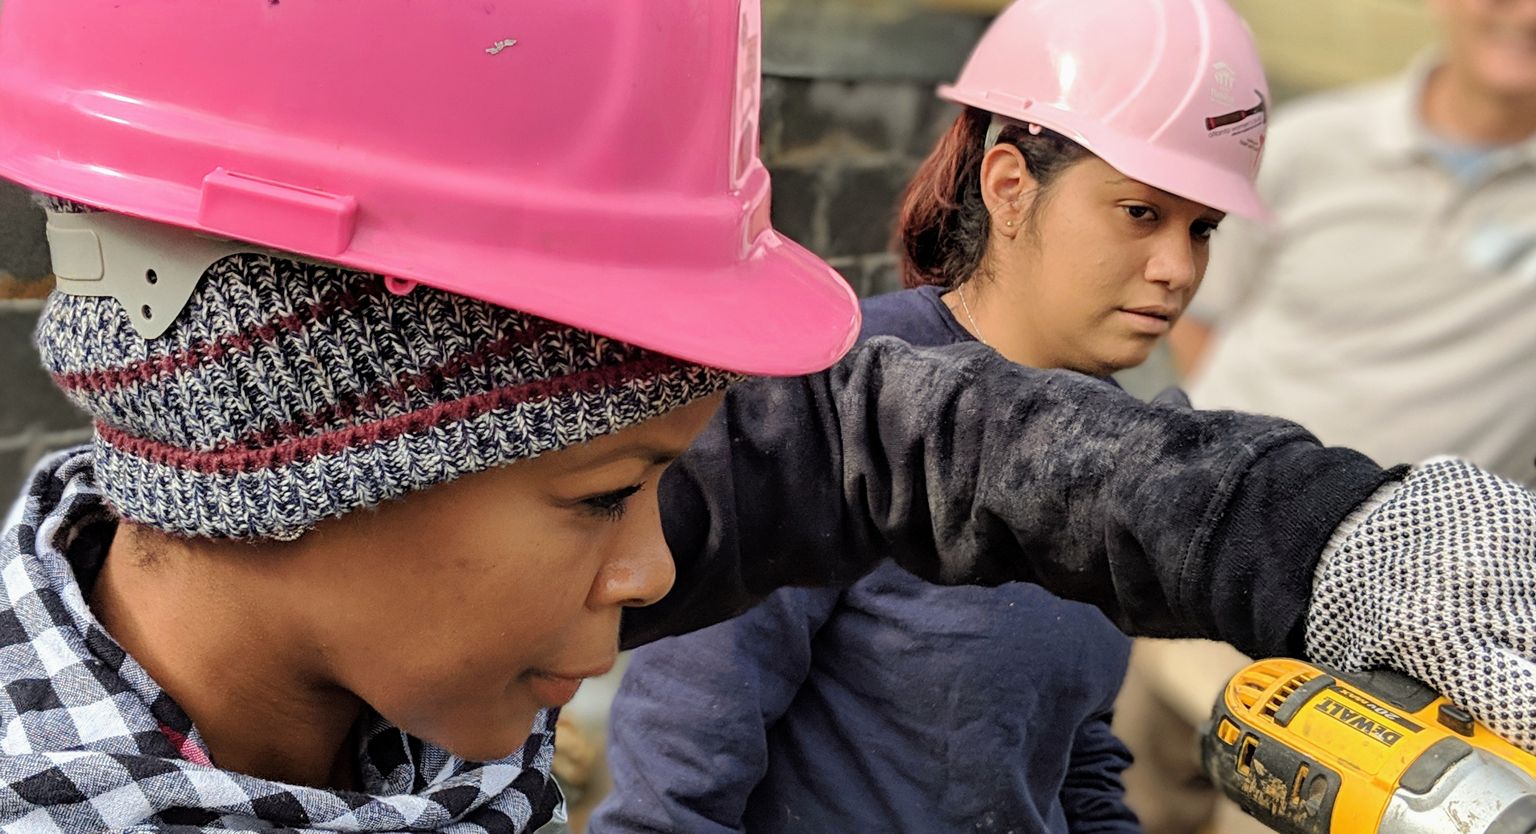 Black female student using hand drill at a construction site while a Hispanic female student observes.